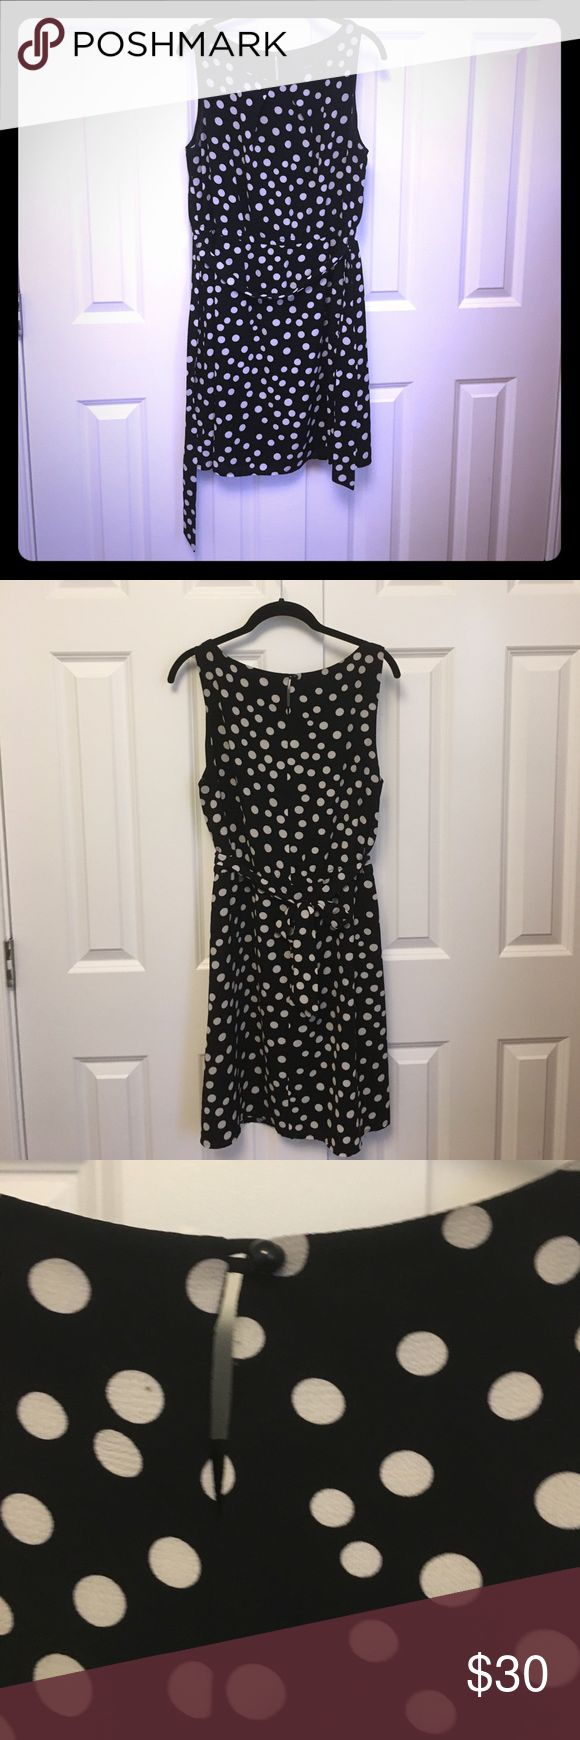 Black and white polka dot dress Beautiful black and white polka dot dress by Jacob. Dress is classy yet fun. Has belt that can tie in front or back. Elastic band at waist. So cute on and can be dressed up for work or down for a weekend. Polka dots are not bright white- more cream colored. Small slit and button on back.  Made in Canada Jacob Dresses Midi